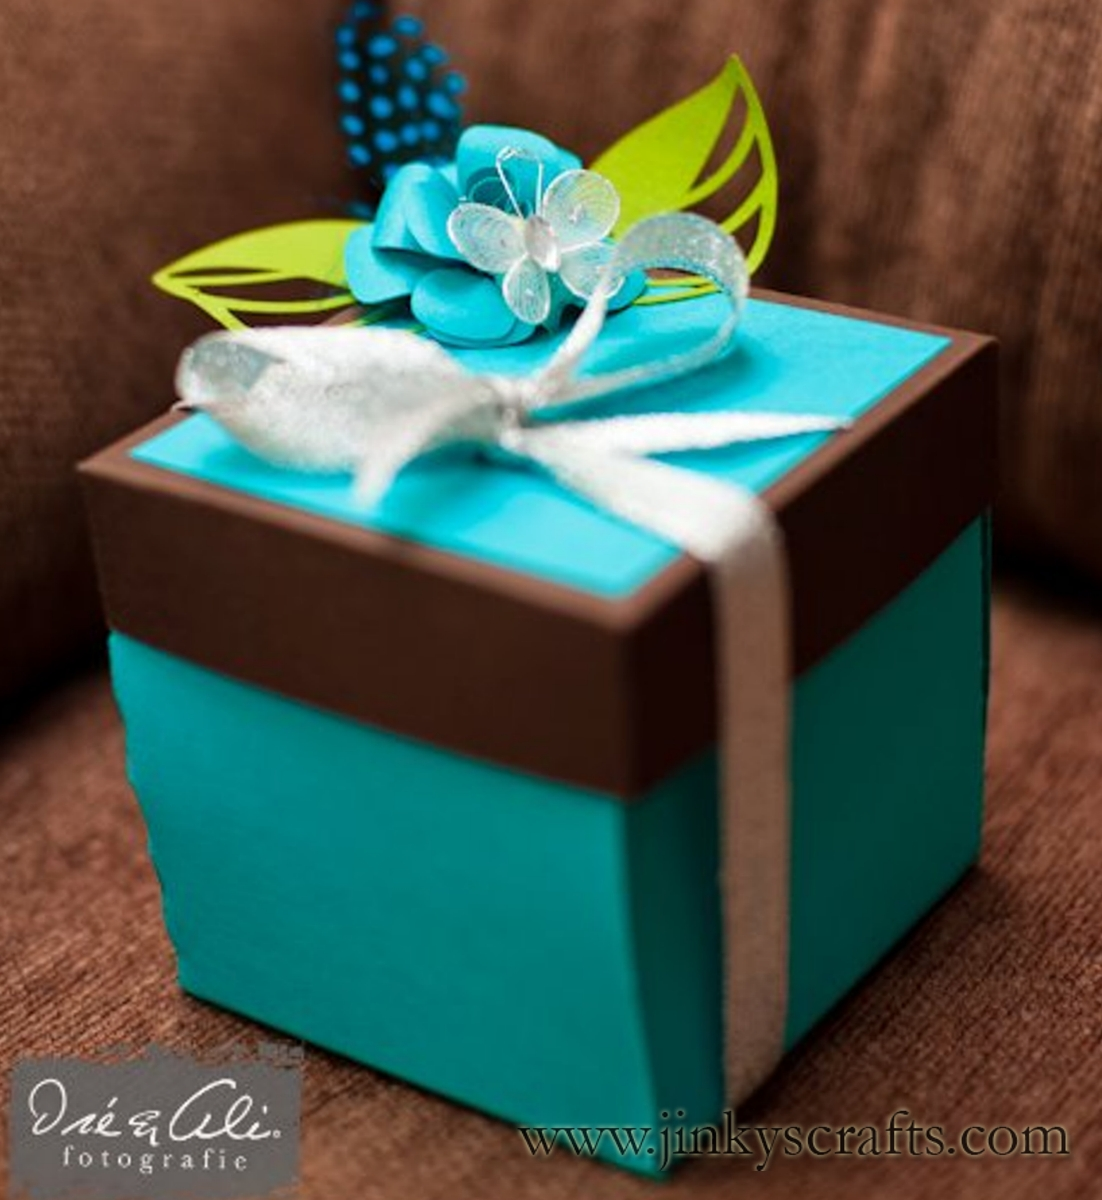 Brideis Quince Sweet 16 S Loves The Elegant Color Combination Of Earthy Brown Tones And Cool Rich Turquoise Blue It Really Creates A Look